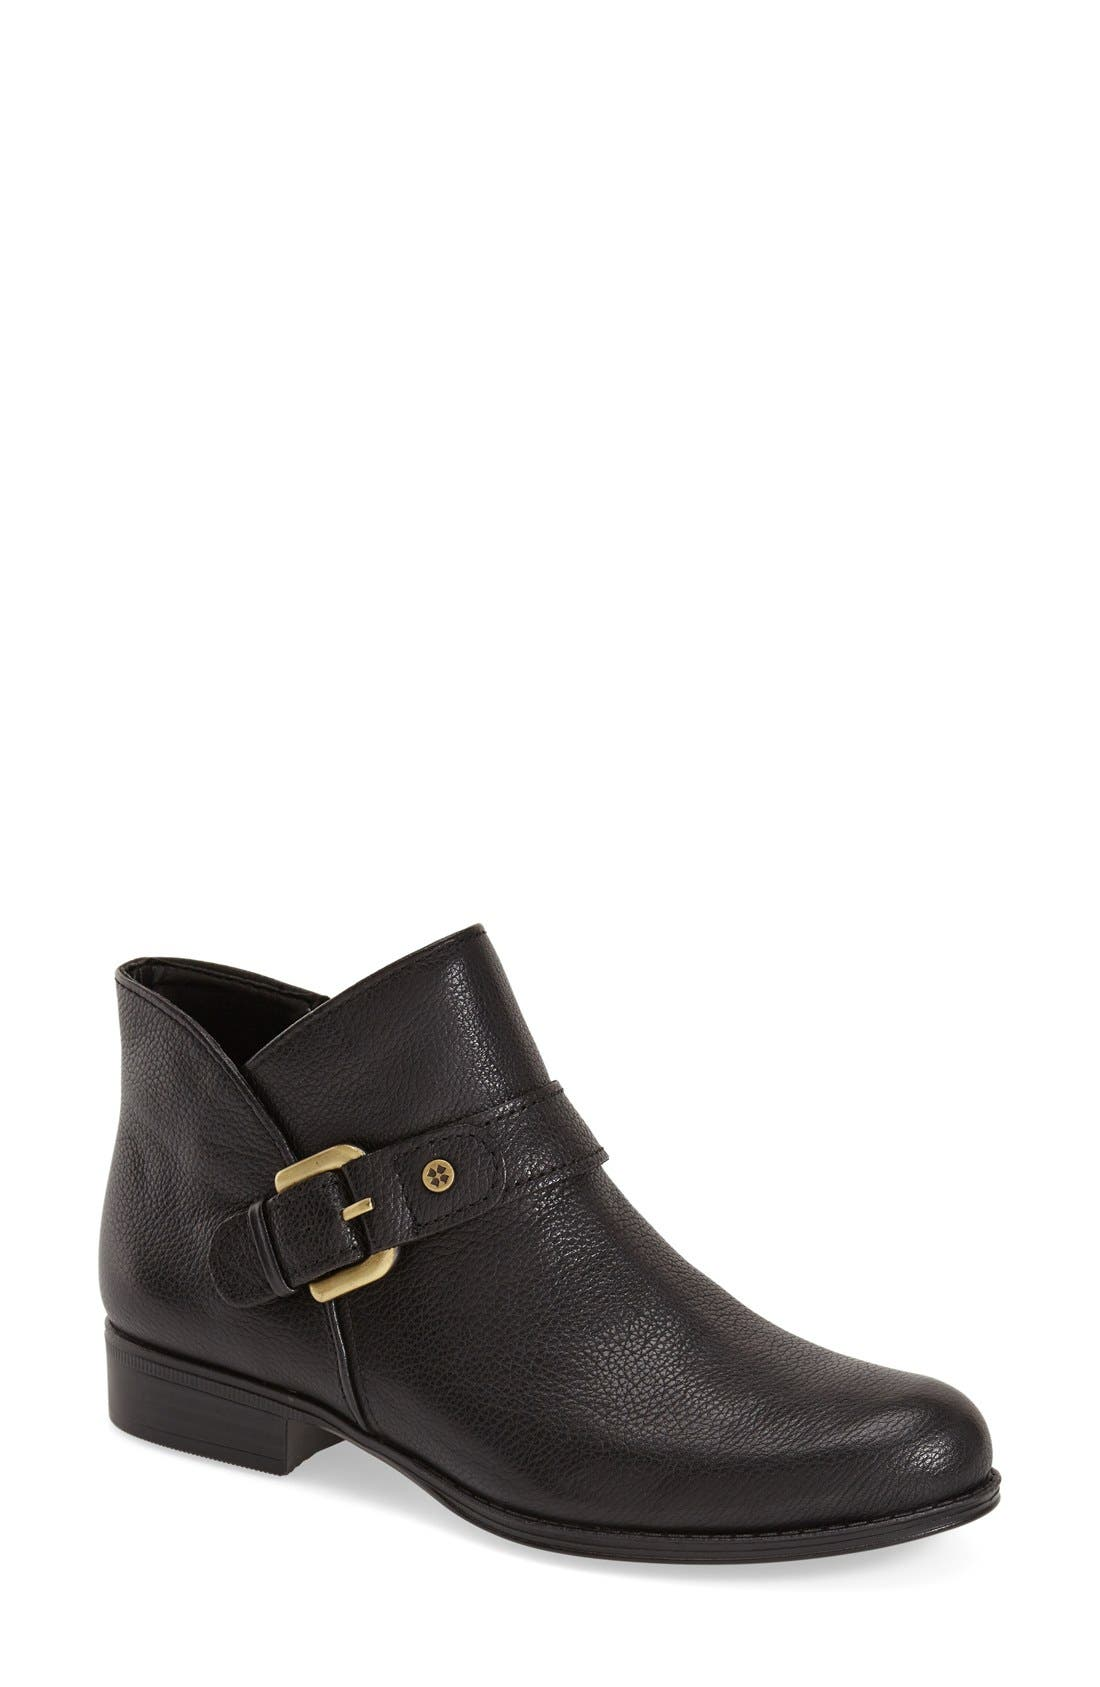 'Jarrett' Buckle Bootie,                         Main,                         color, Black Leather